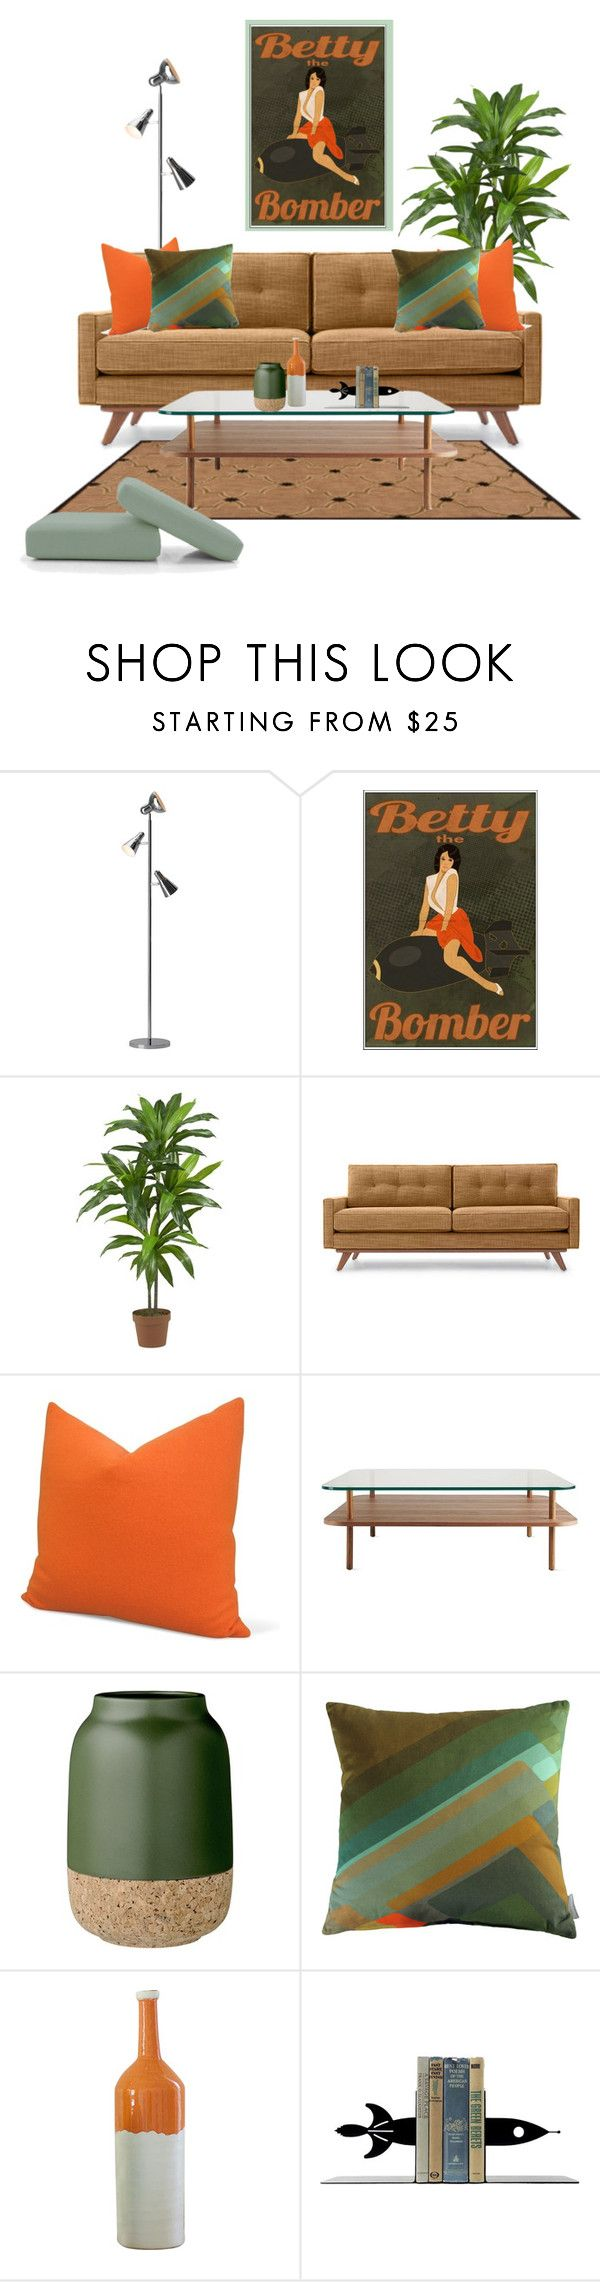 Betty the Bomber by she-kills-monsters on Polyvore featuring interior, interiors, interior design, home, home decor, interior decorating, Thrive, Zuo, Nearly Natural and Joybird Furniture